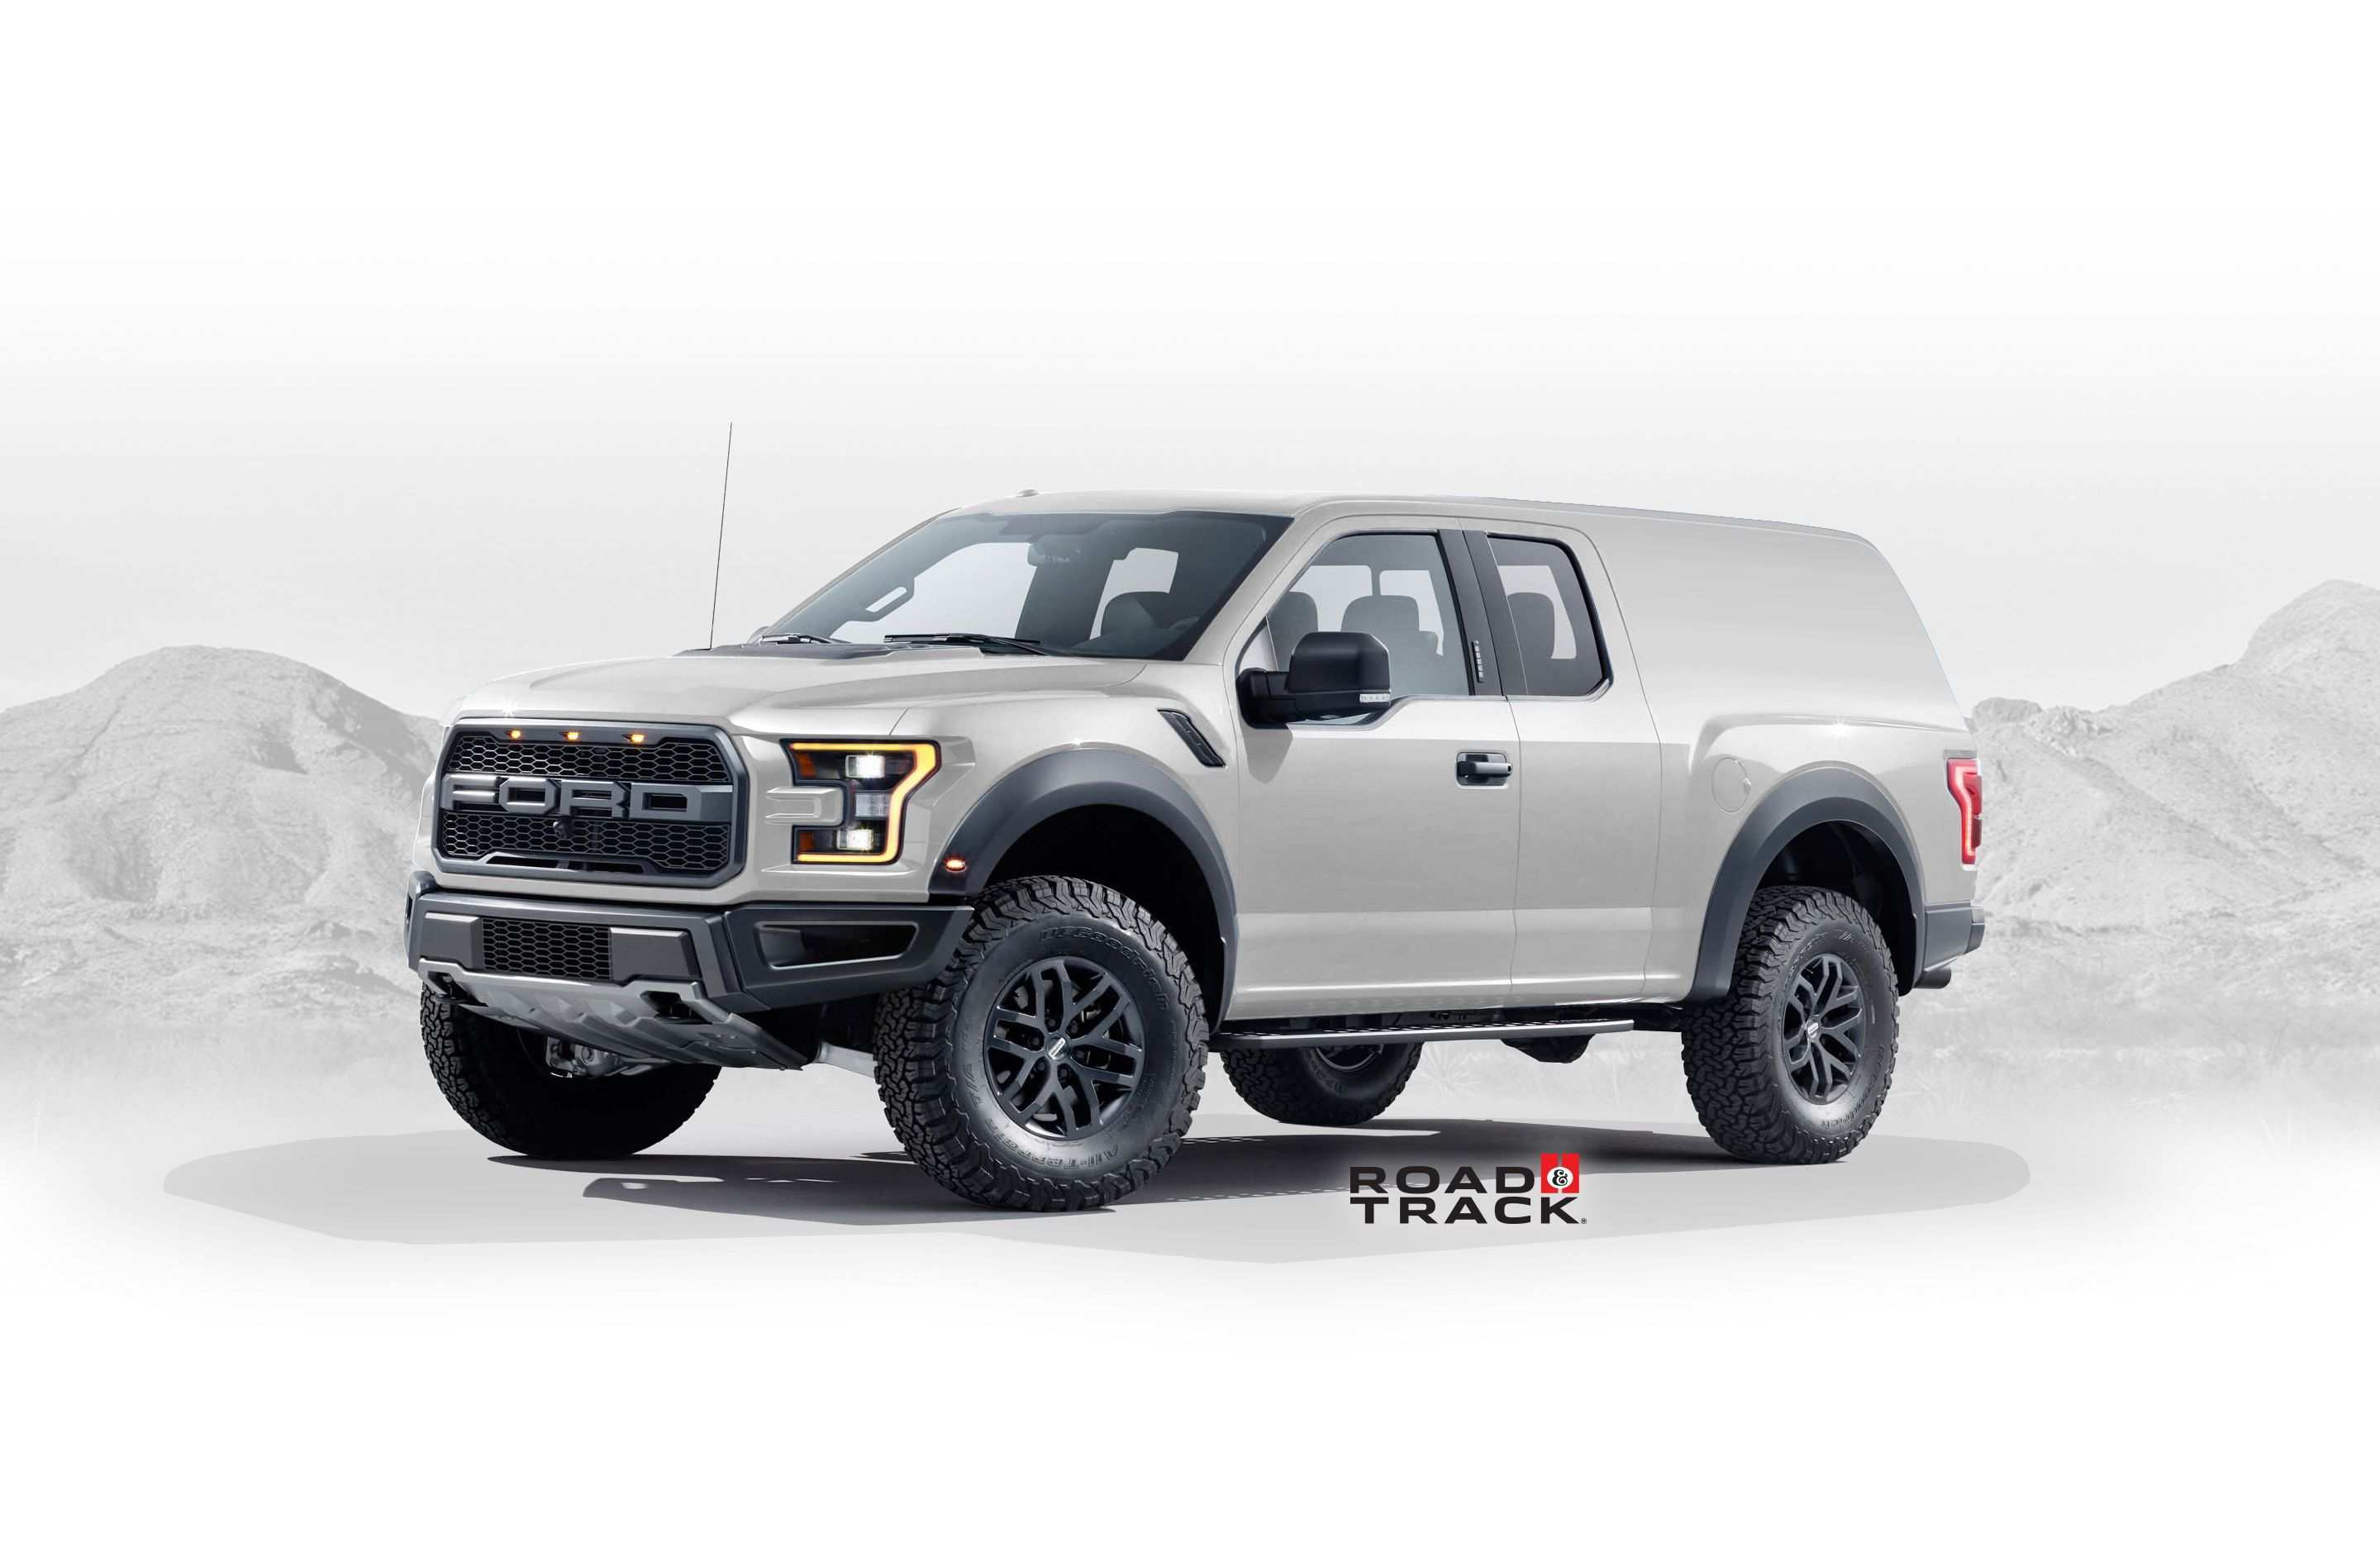 57 All New 2020 Ford Bronco Design Prices